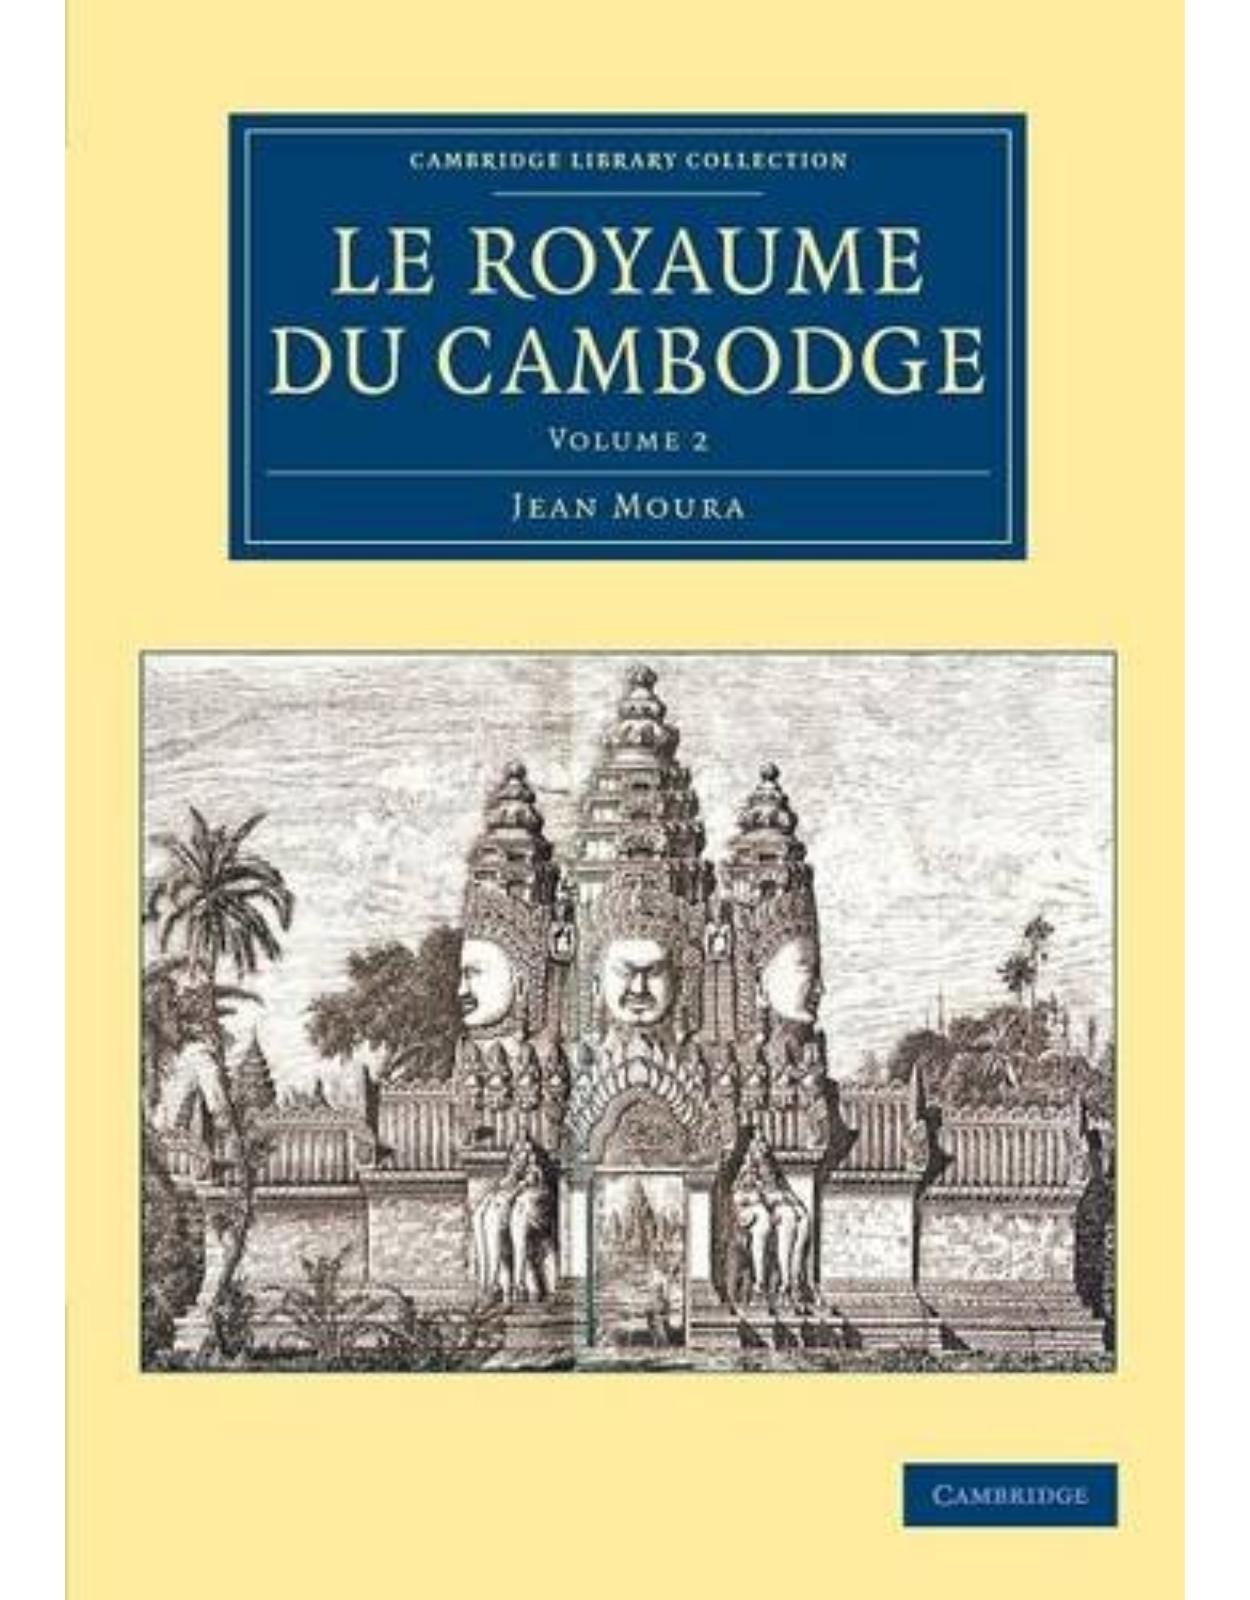 Le Royaume du Cambodge: Volume 2 (Cambridge Library Collection - East and South-East Asian History)